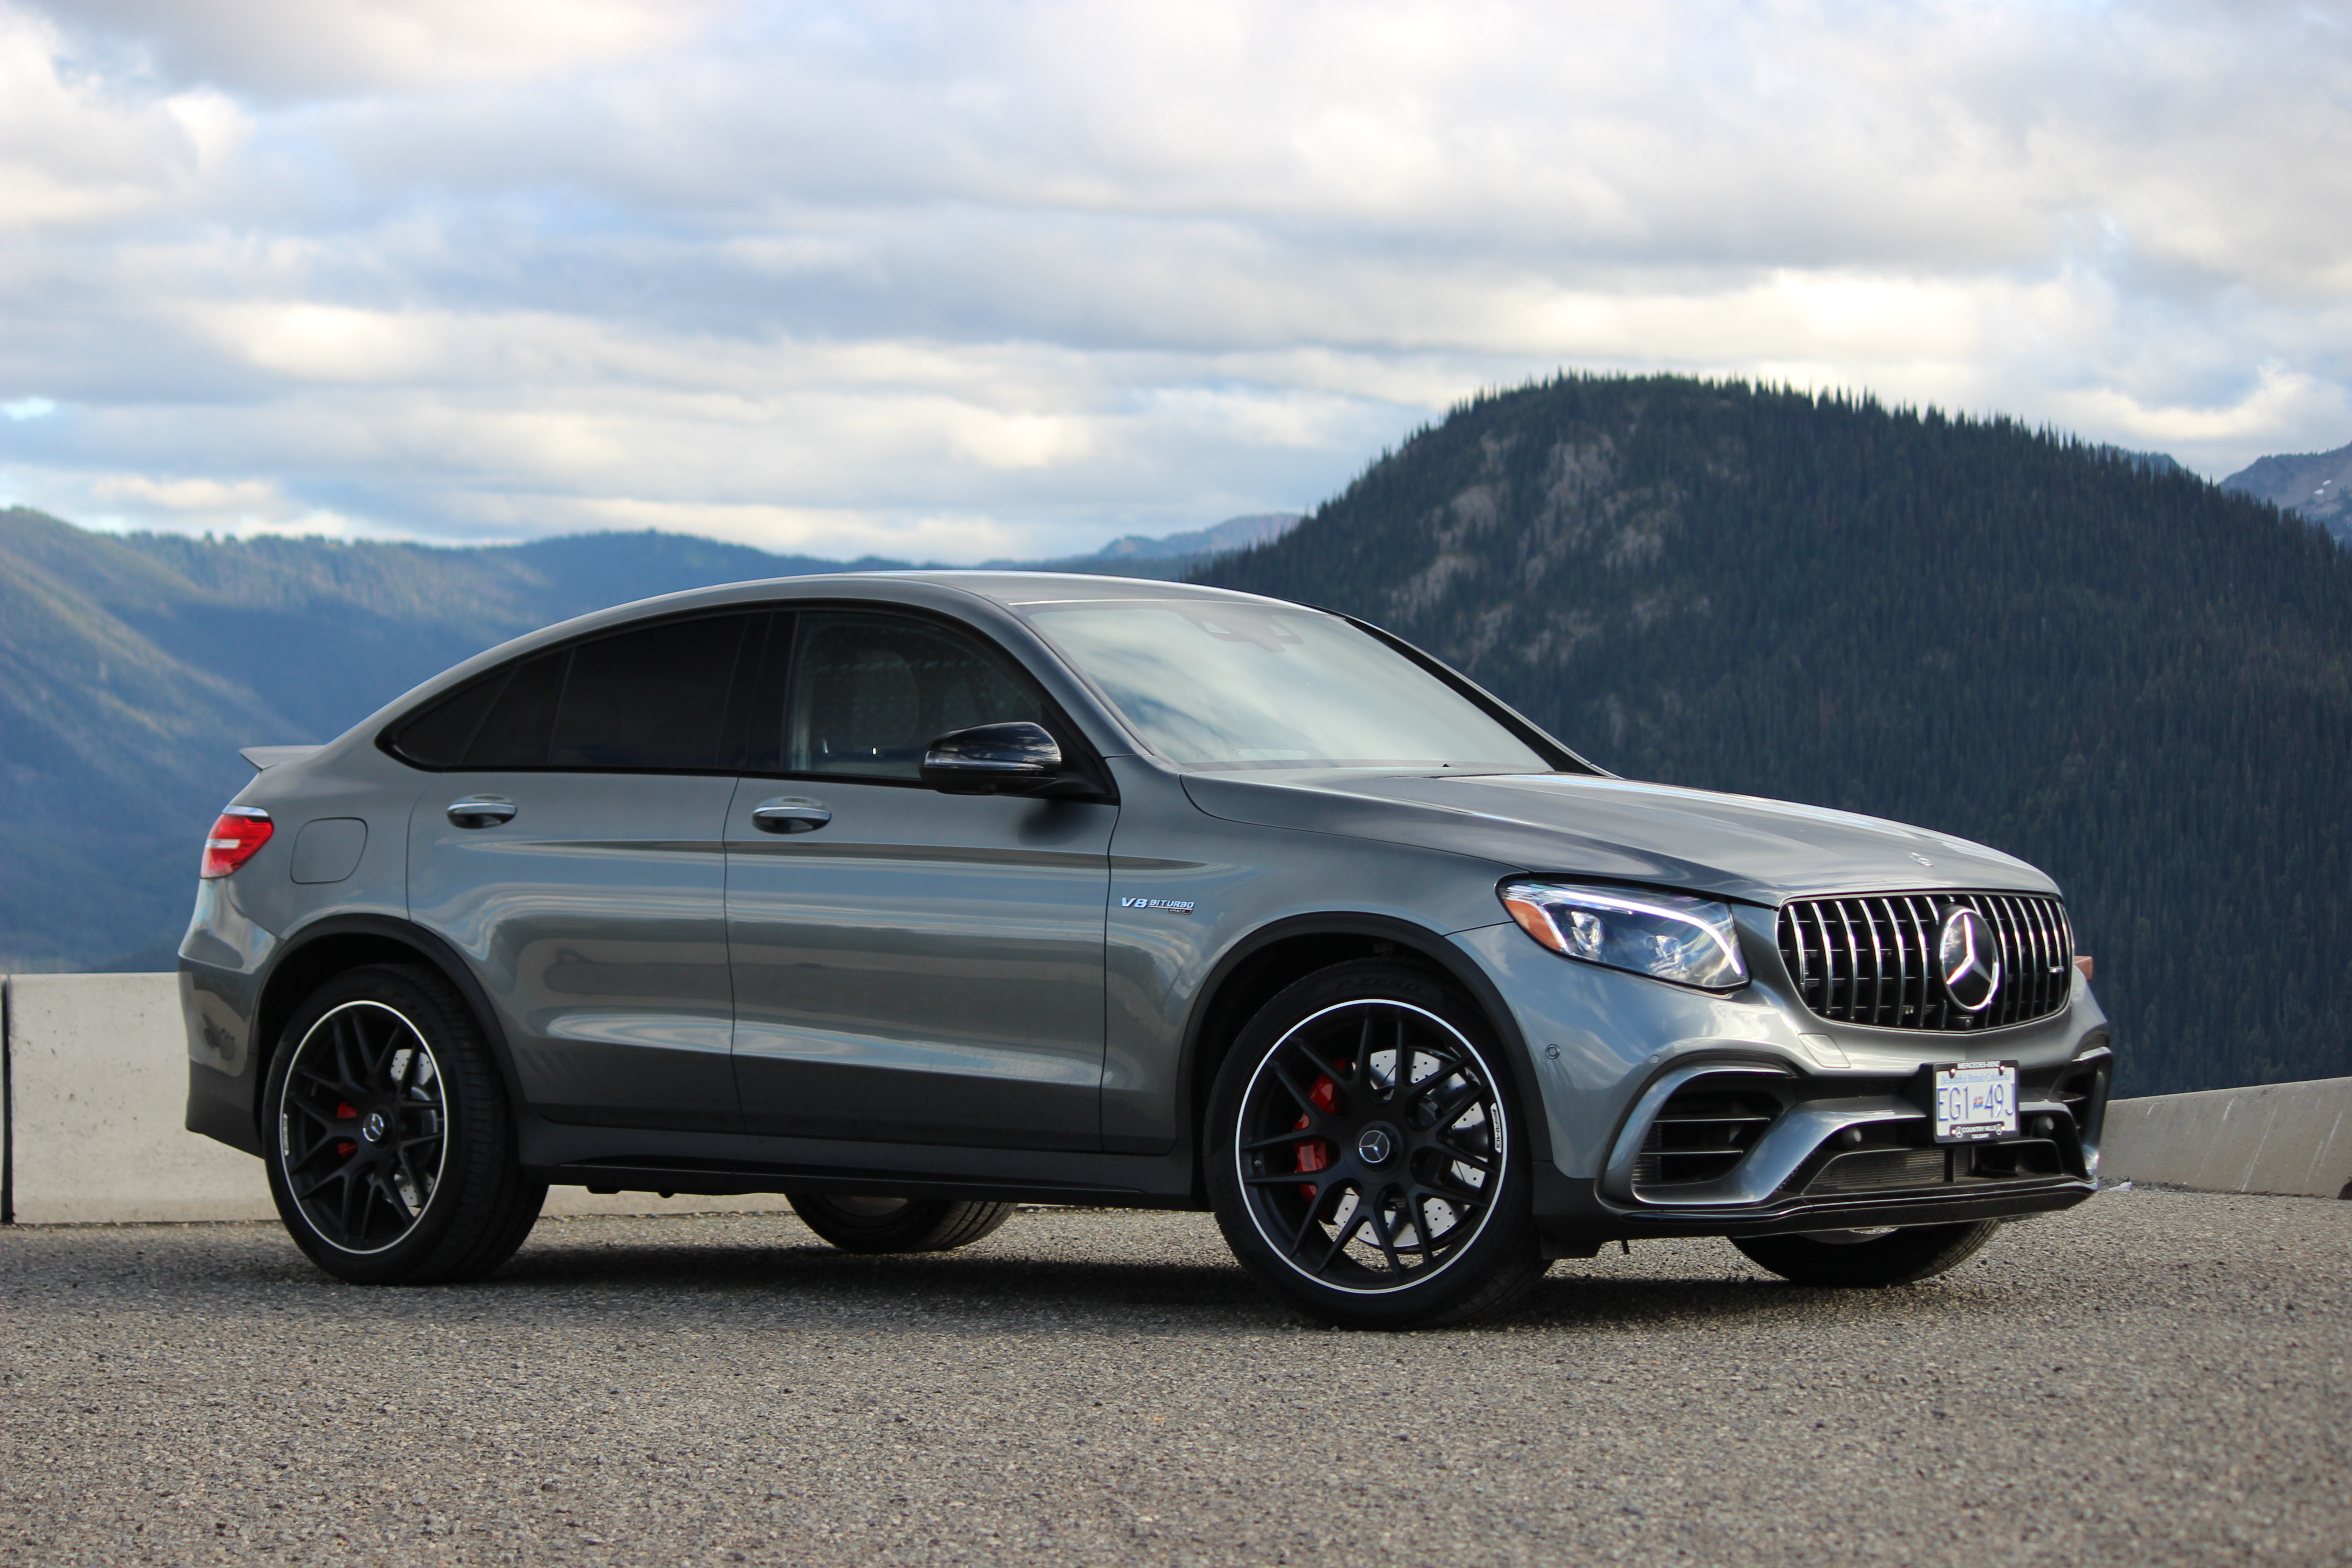 Review 2018 Mercedes-AMG GLC 63 S 4Matic+ Coupe